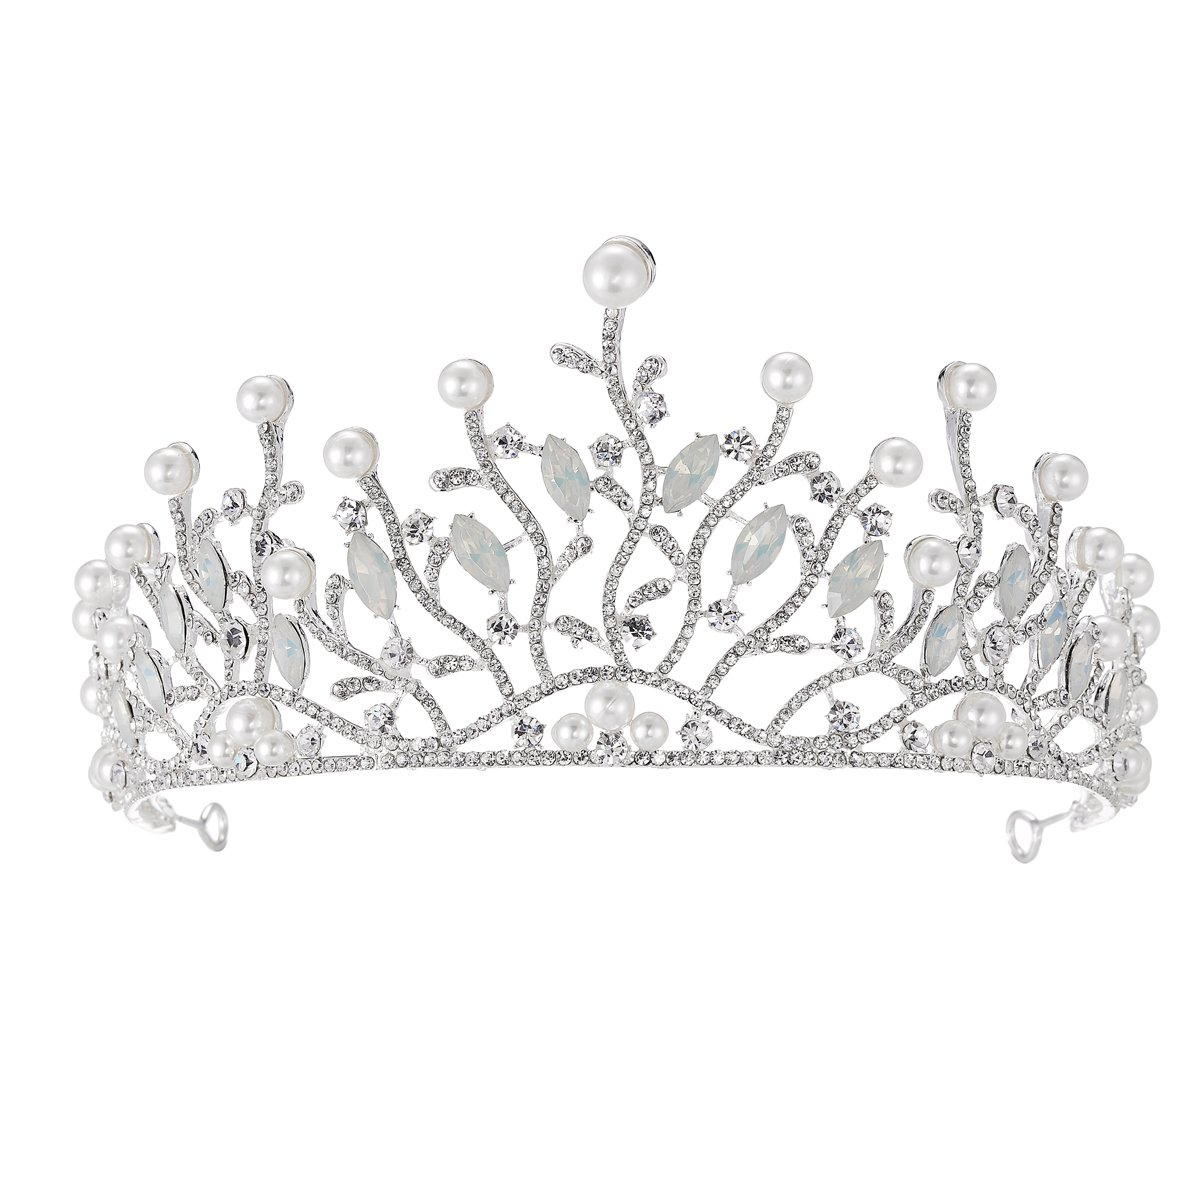 Wedding Crowns Tiara Silver...